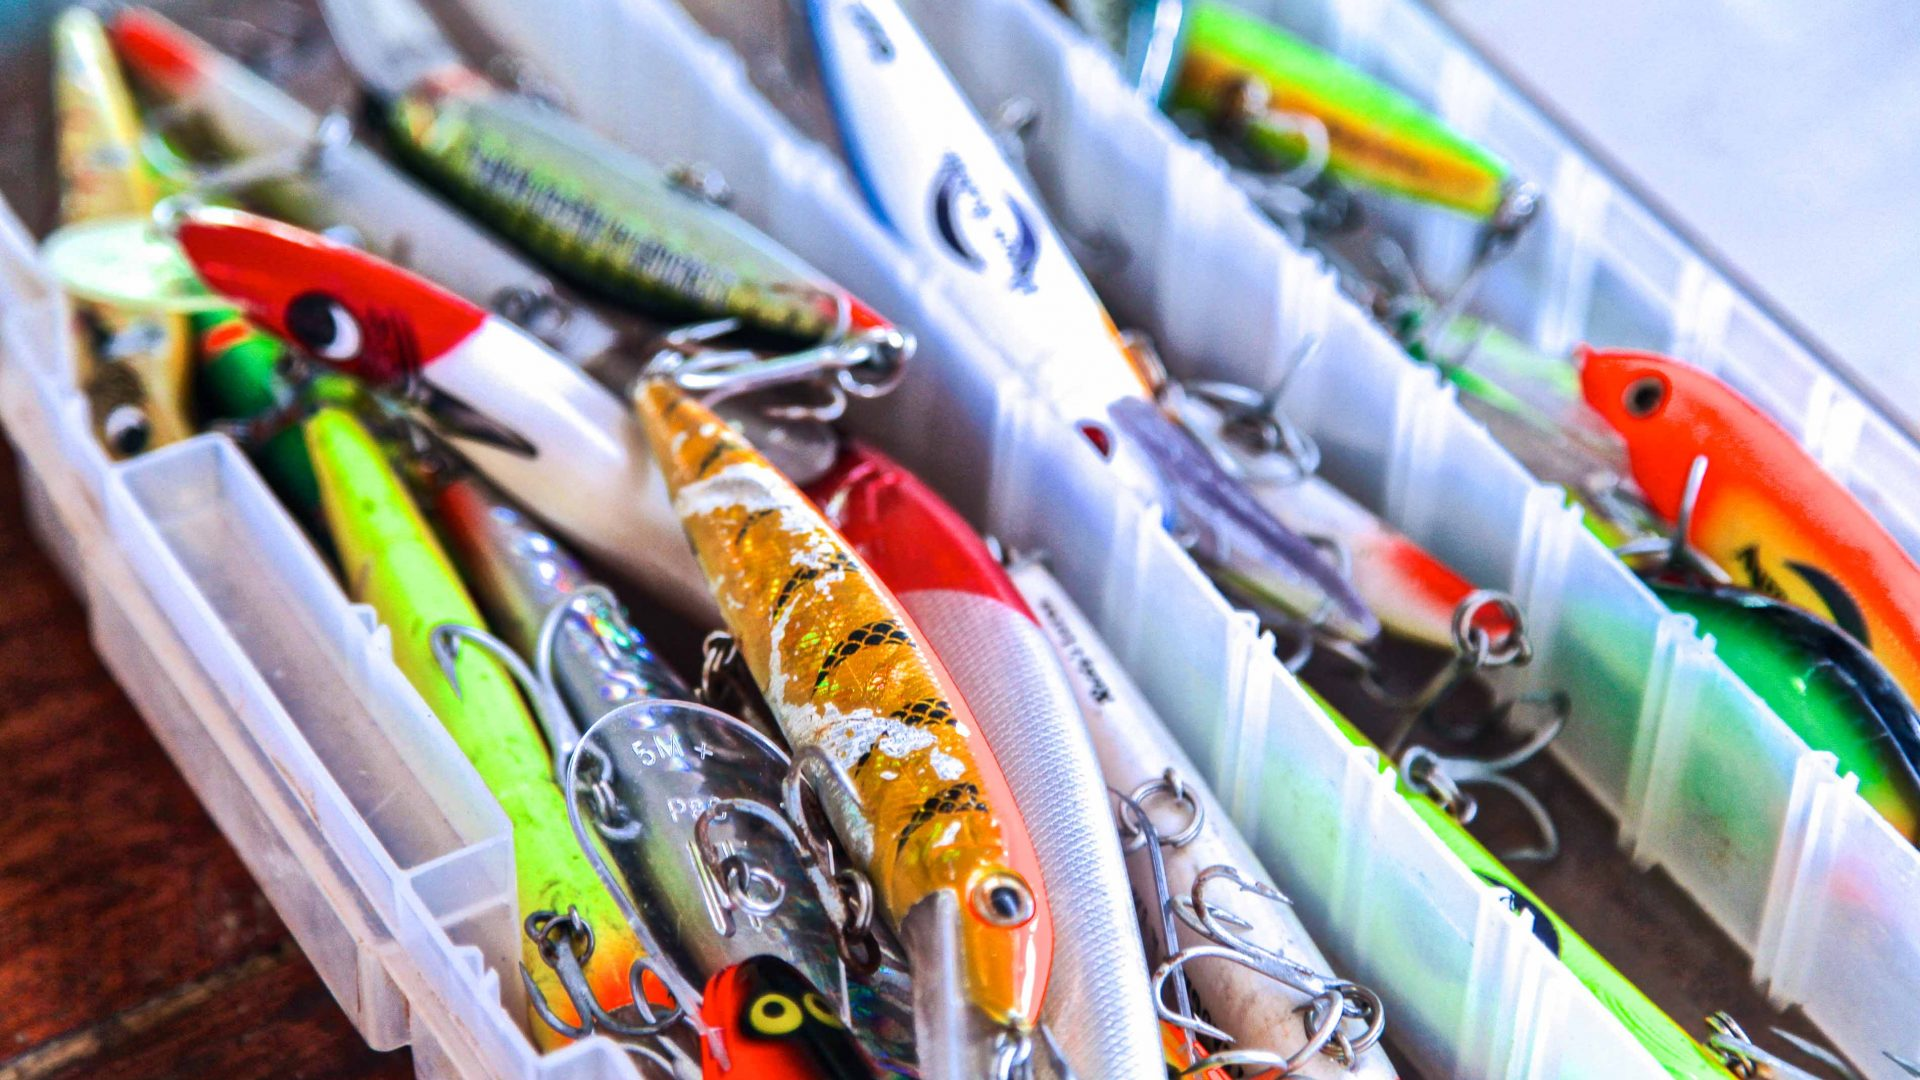 Fishing lures are ready to go at Lake Murray in PNG, known for the enormous black bass.